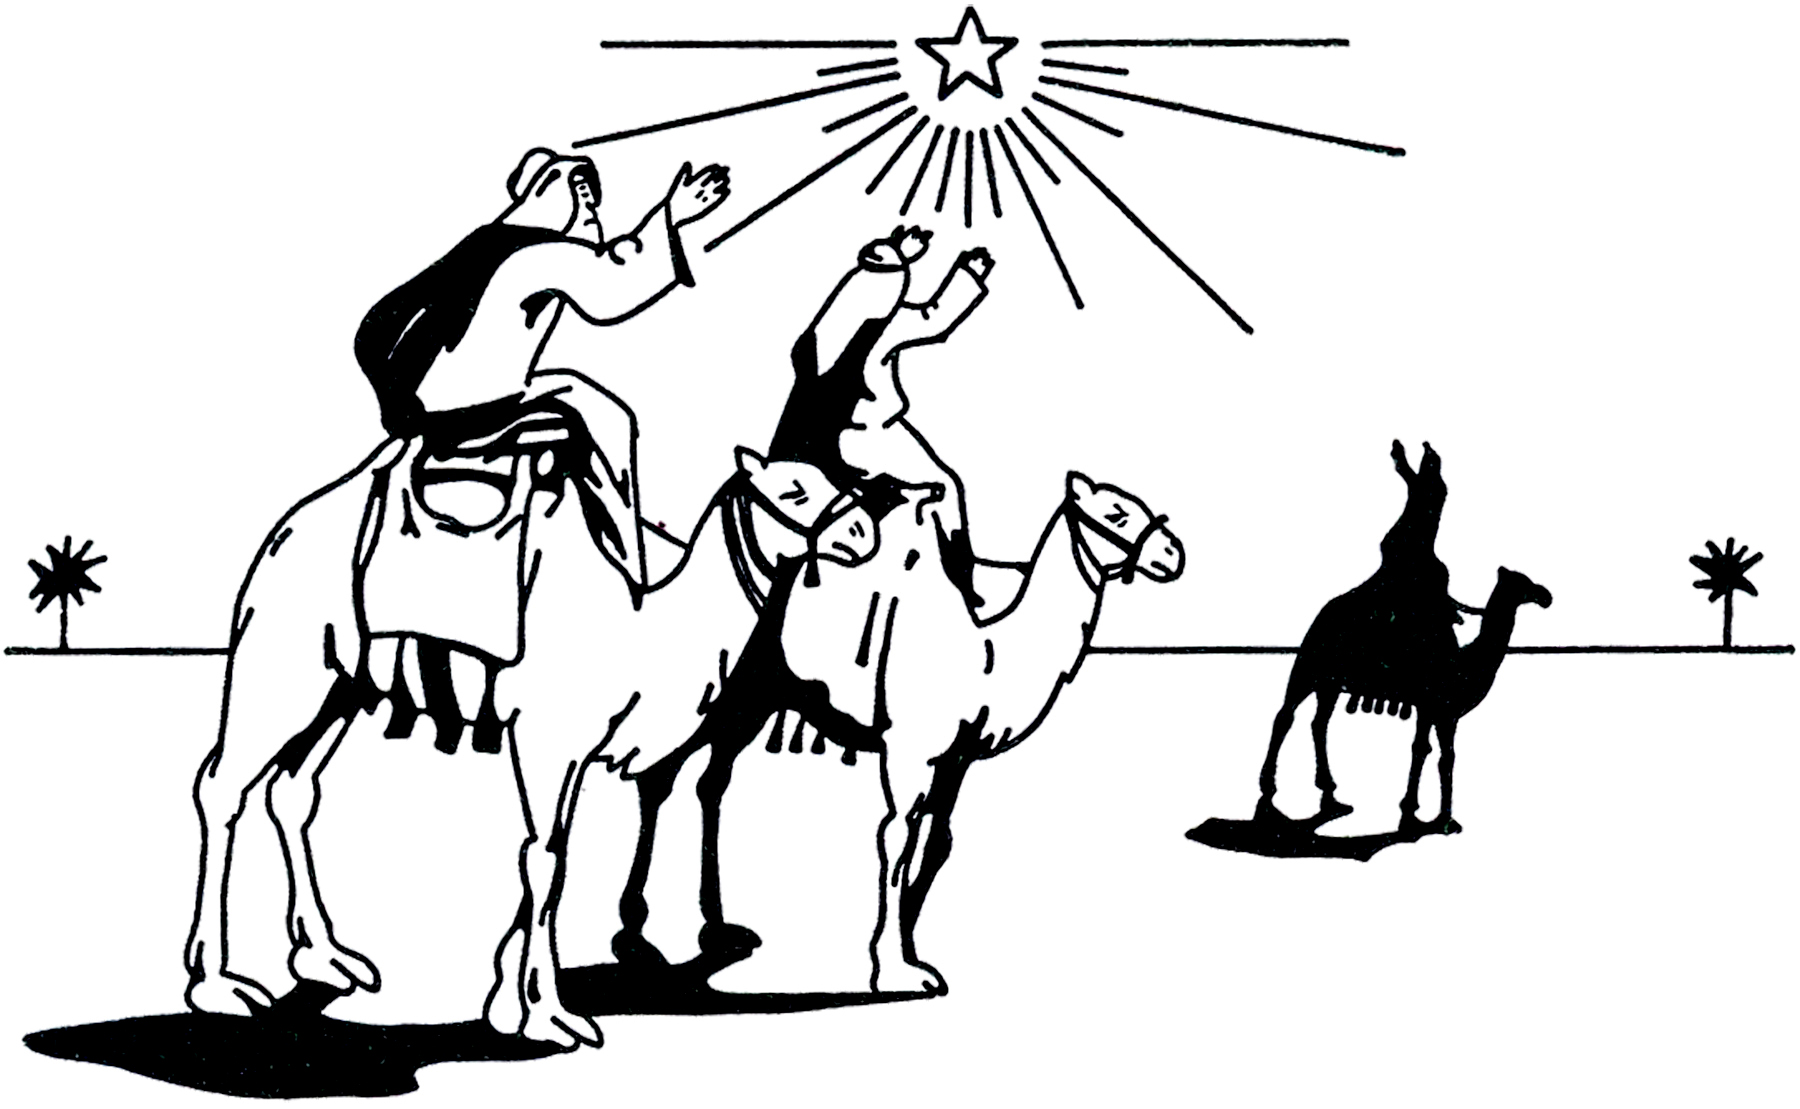 Wise men clipart black and white